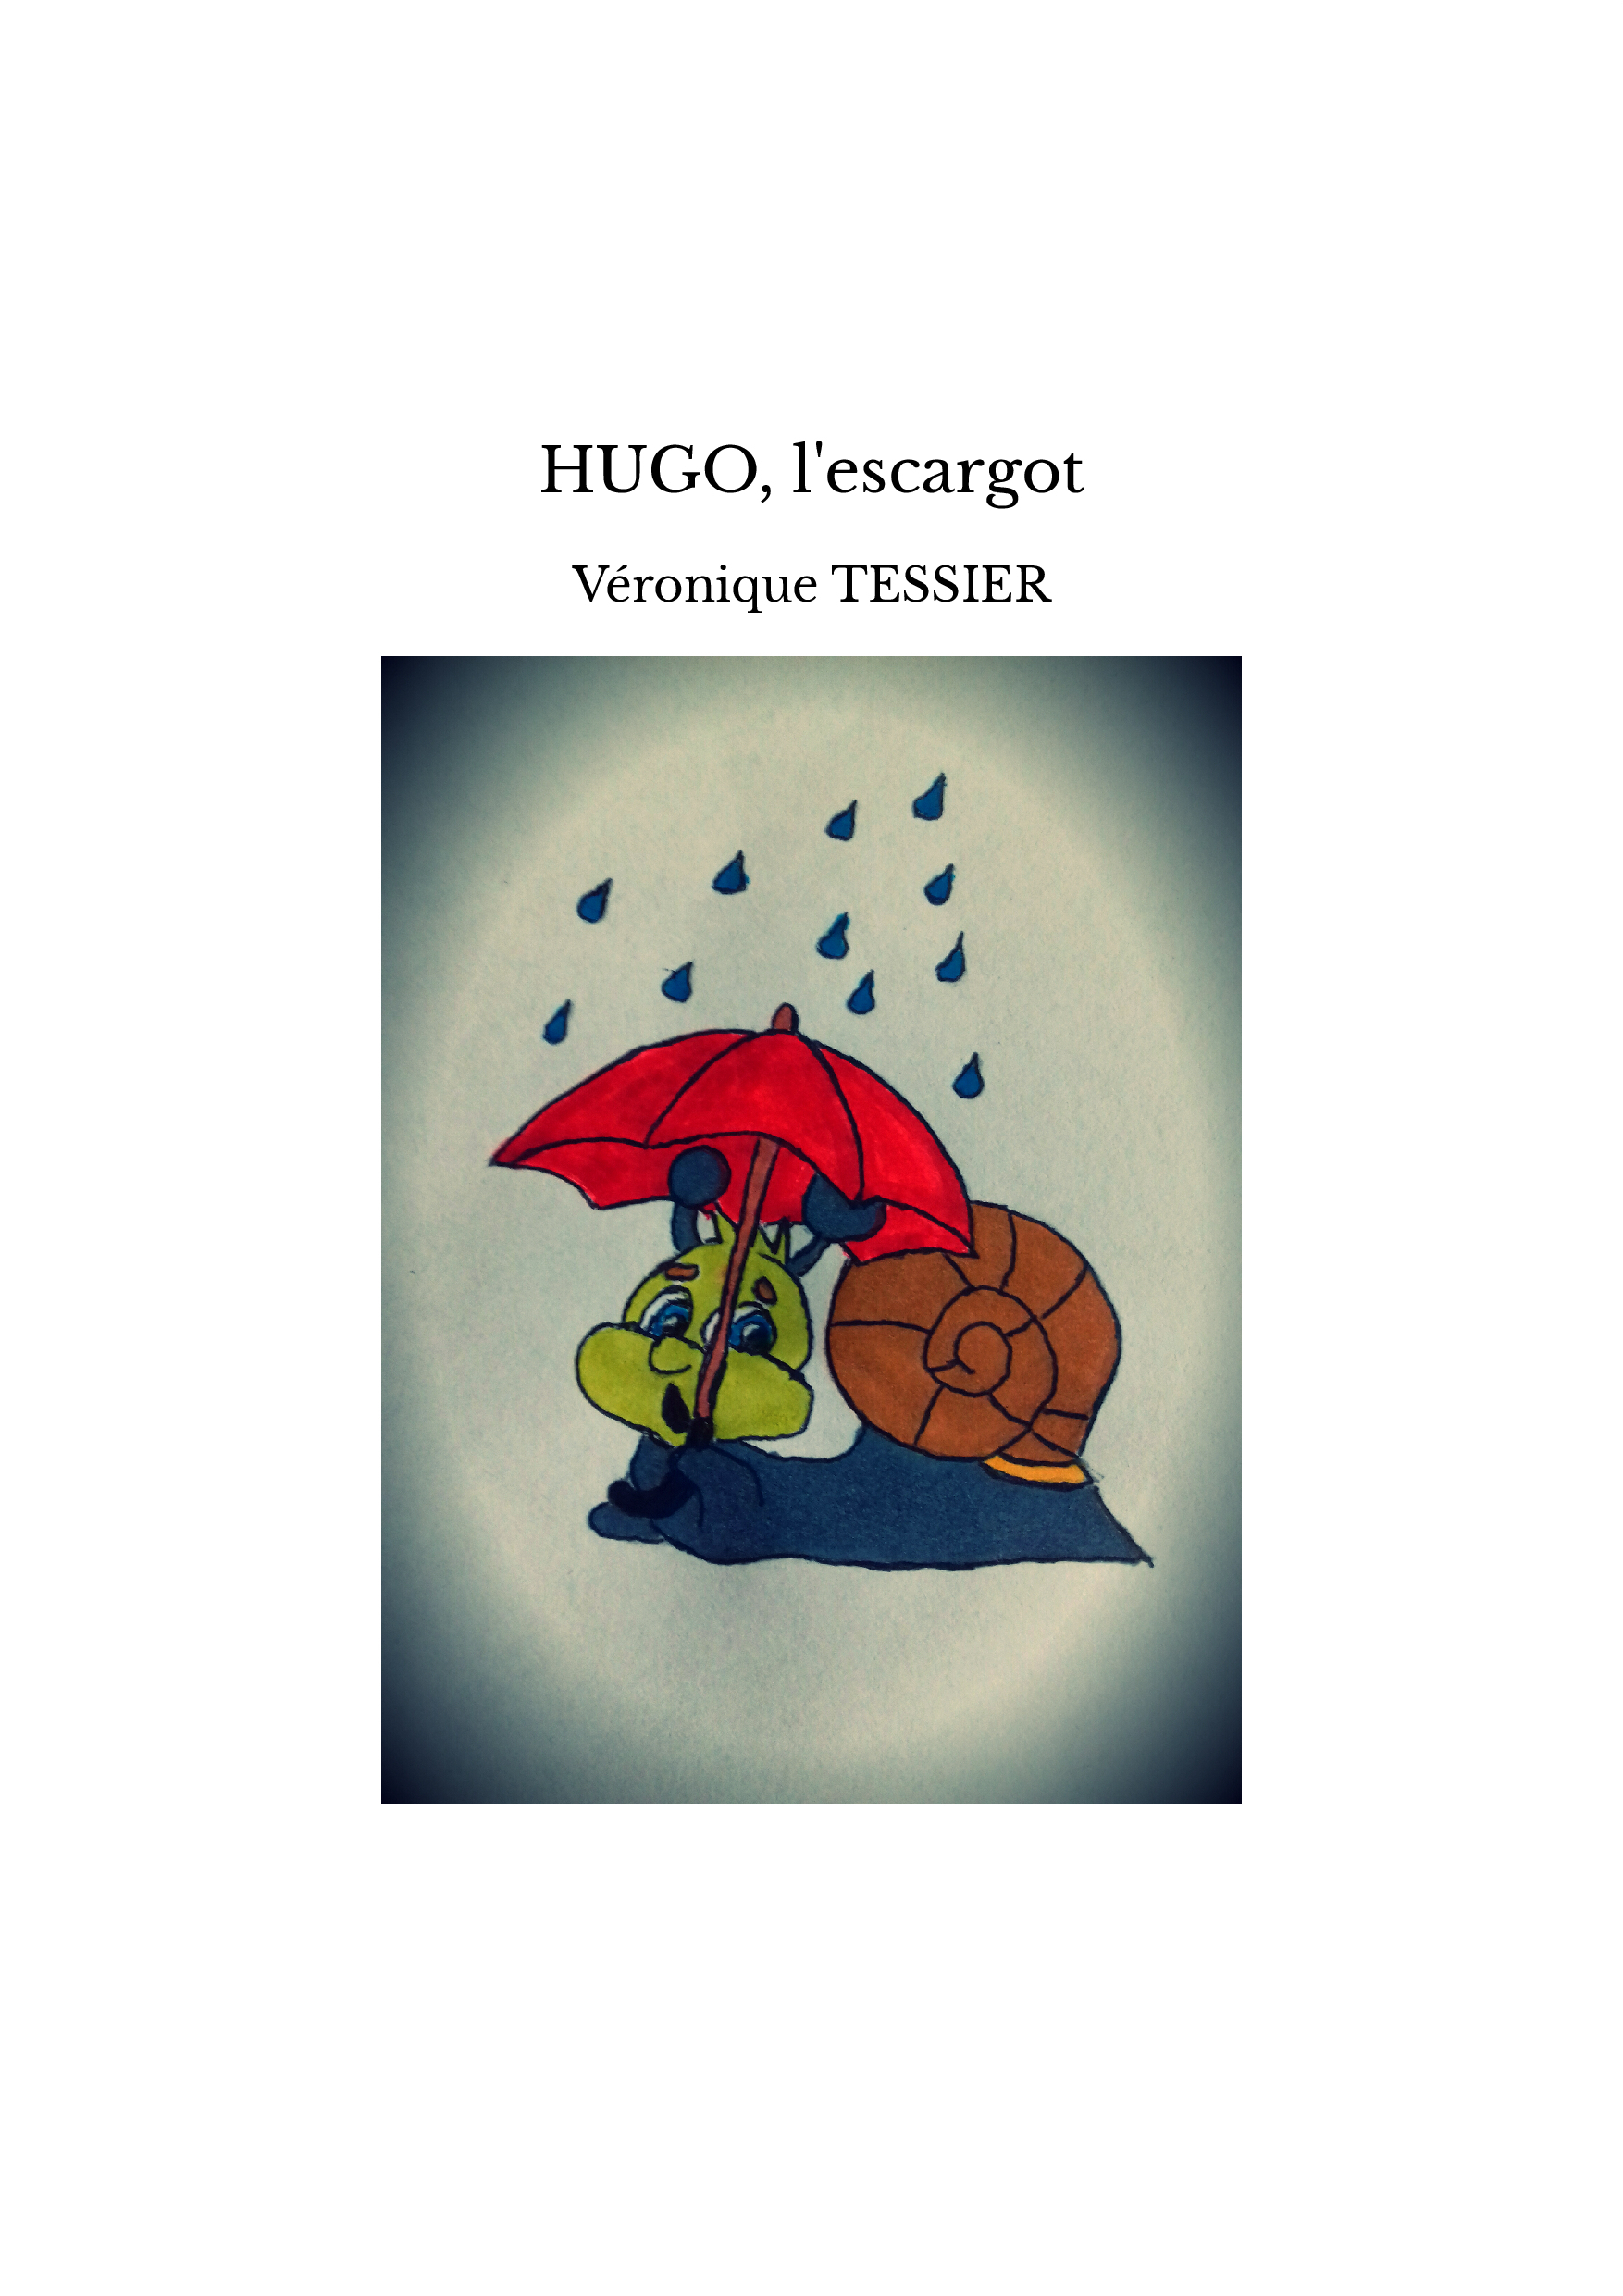 Hugo, L'Escargot - Veronimo encequiconcerne Hugo L'Escargot